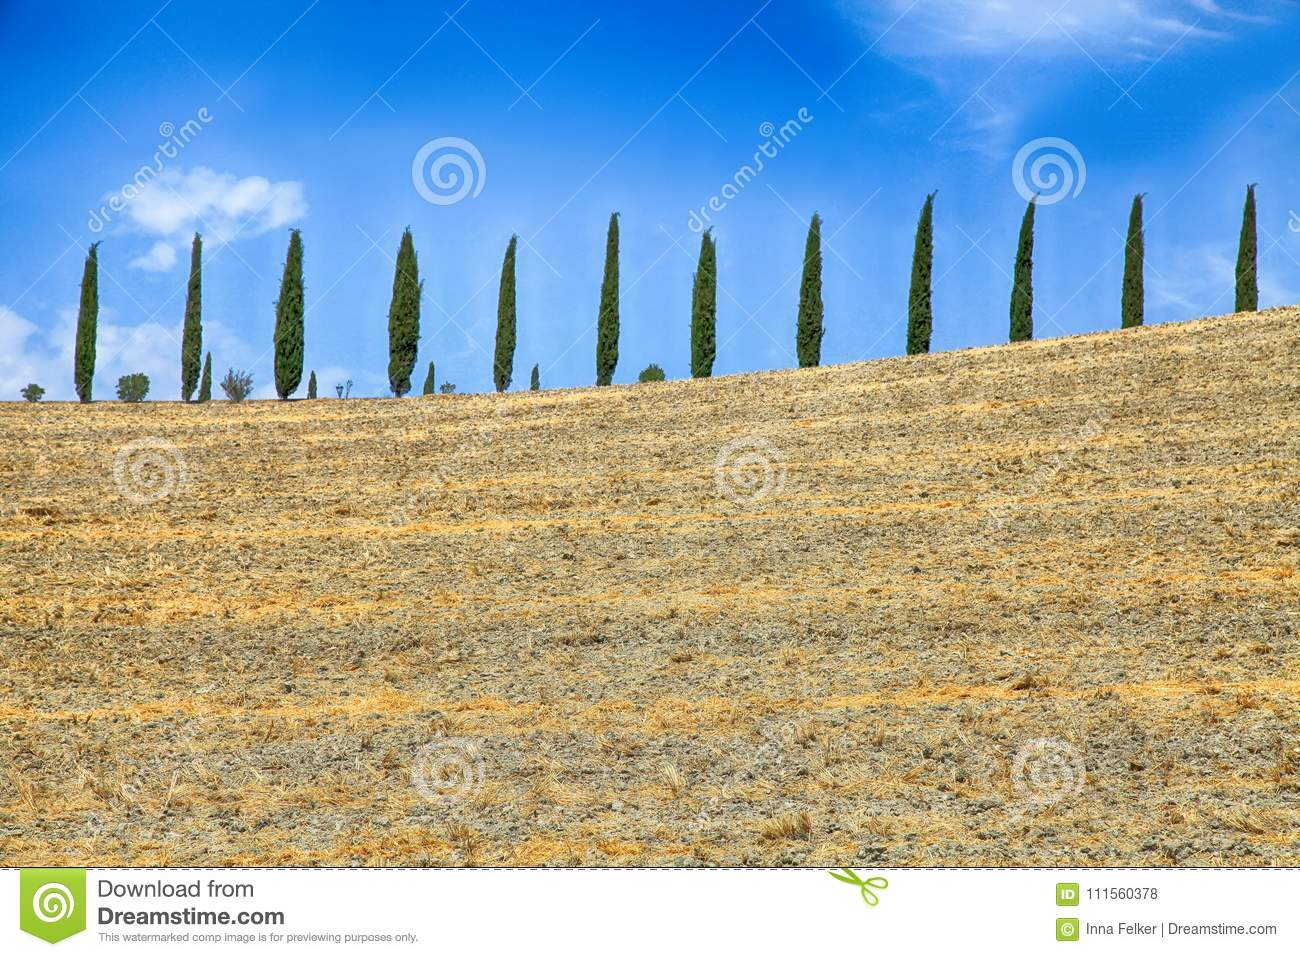 Italian cypress trees rows and yellow field rural landscape, Tuscany, Italy.